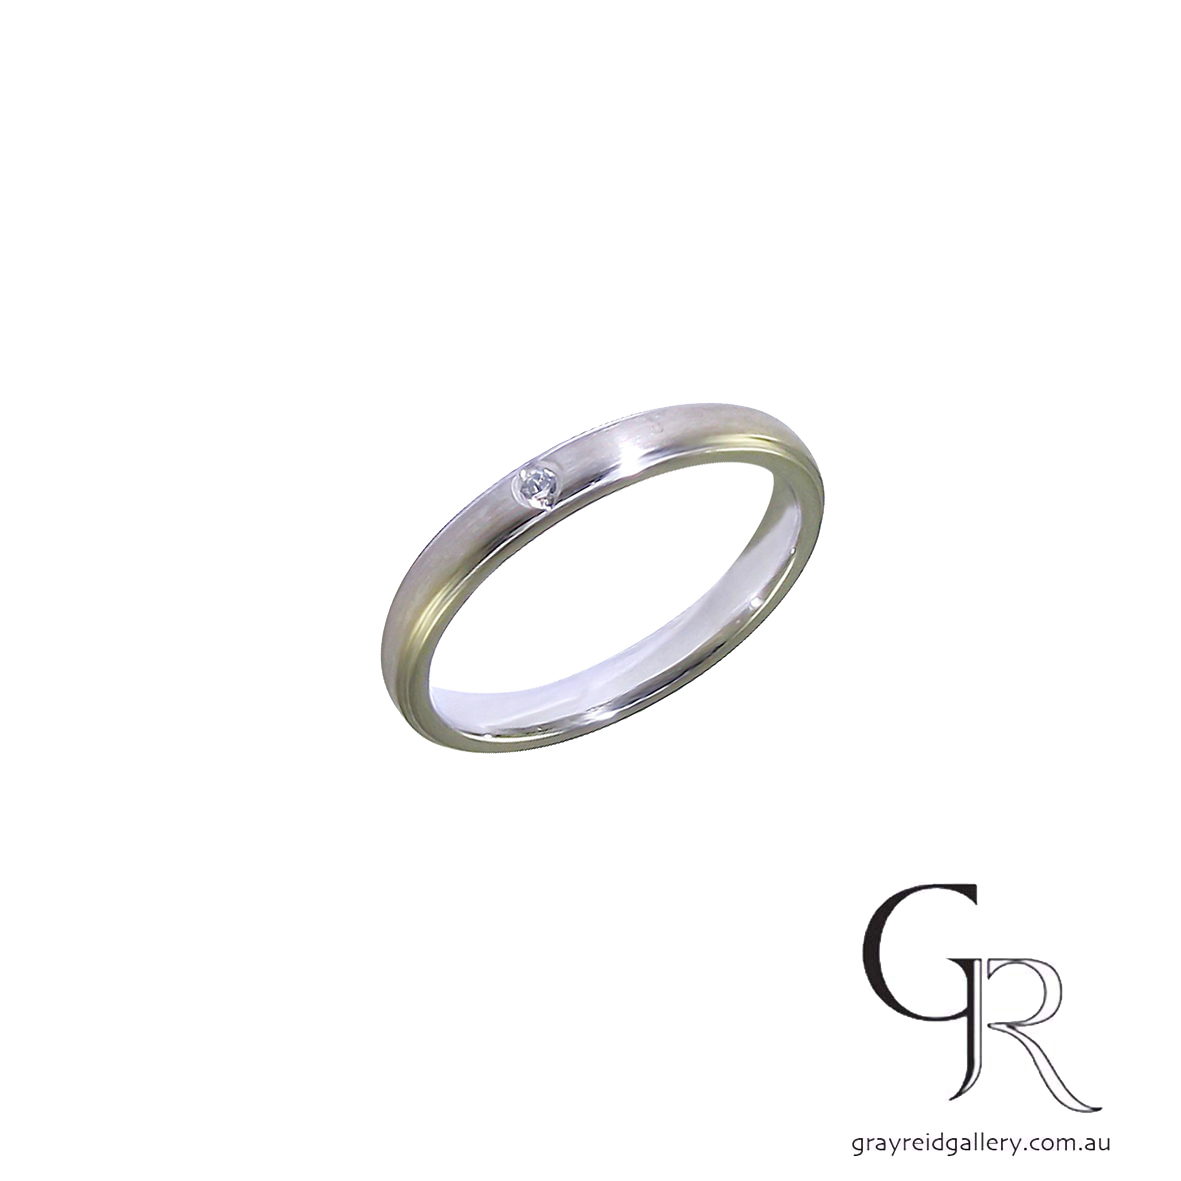 Price according to size.  Gray Reid Gallery hosts a large range of wedding bands. Among our online collection you will find vintage wedding bands, antique wedding bands, contemporary wedding bands by local artists as well as wedding bands we have made in our own workshop for stock or for a clients bespoke order. This gallery is just a small selection of what our Melbourne jewellery Gallery has and is to be used as an inspirational guide as to they type of stock we carry.